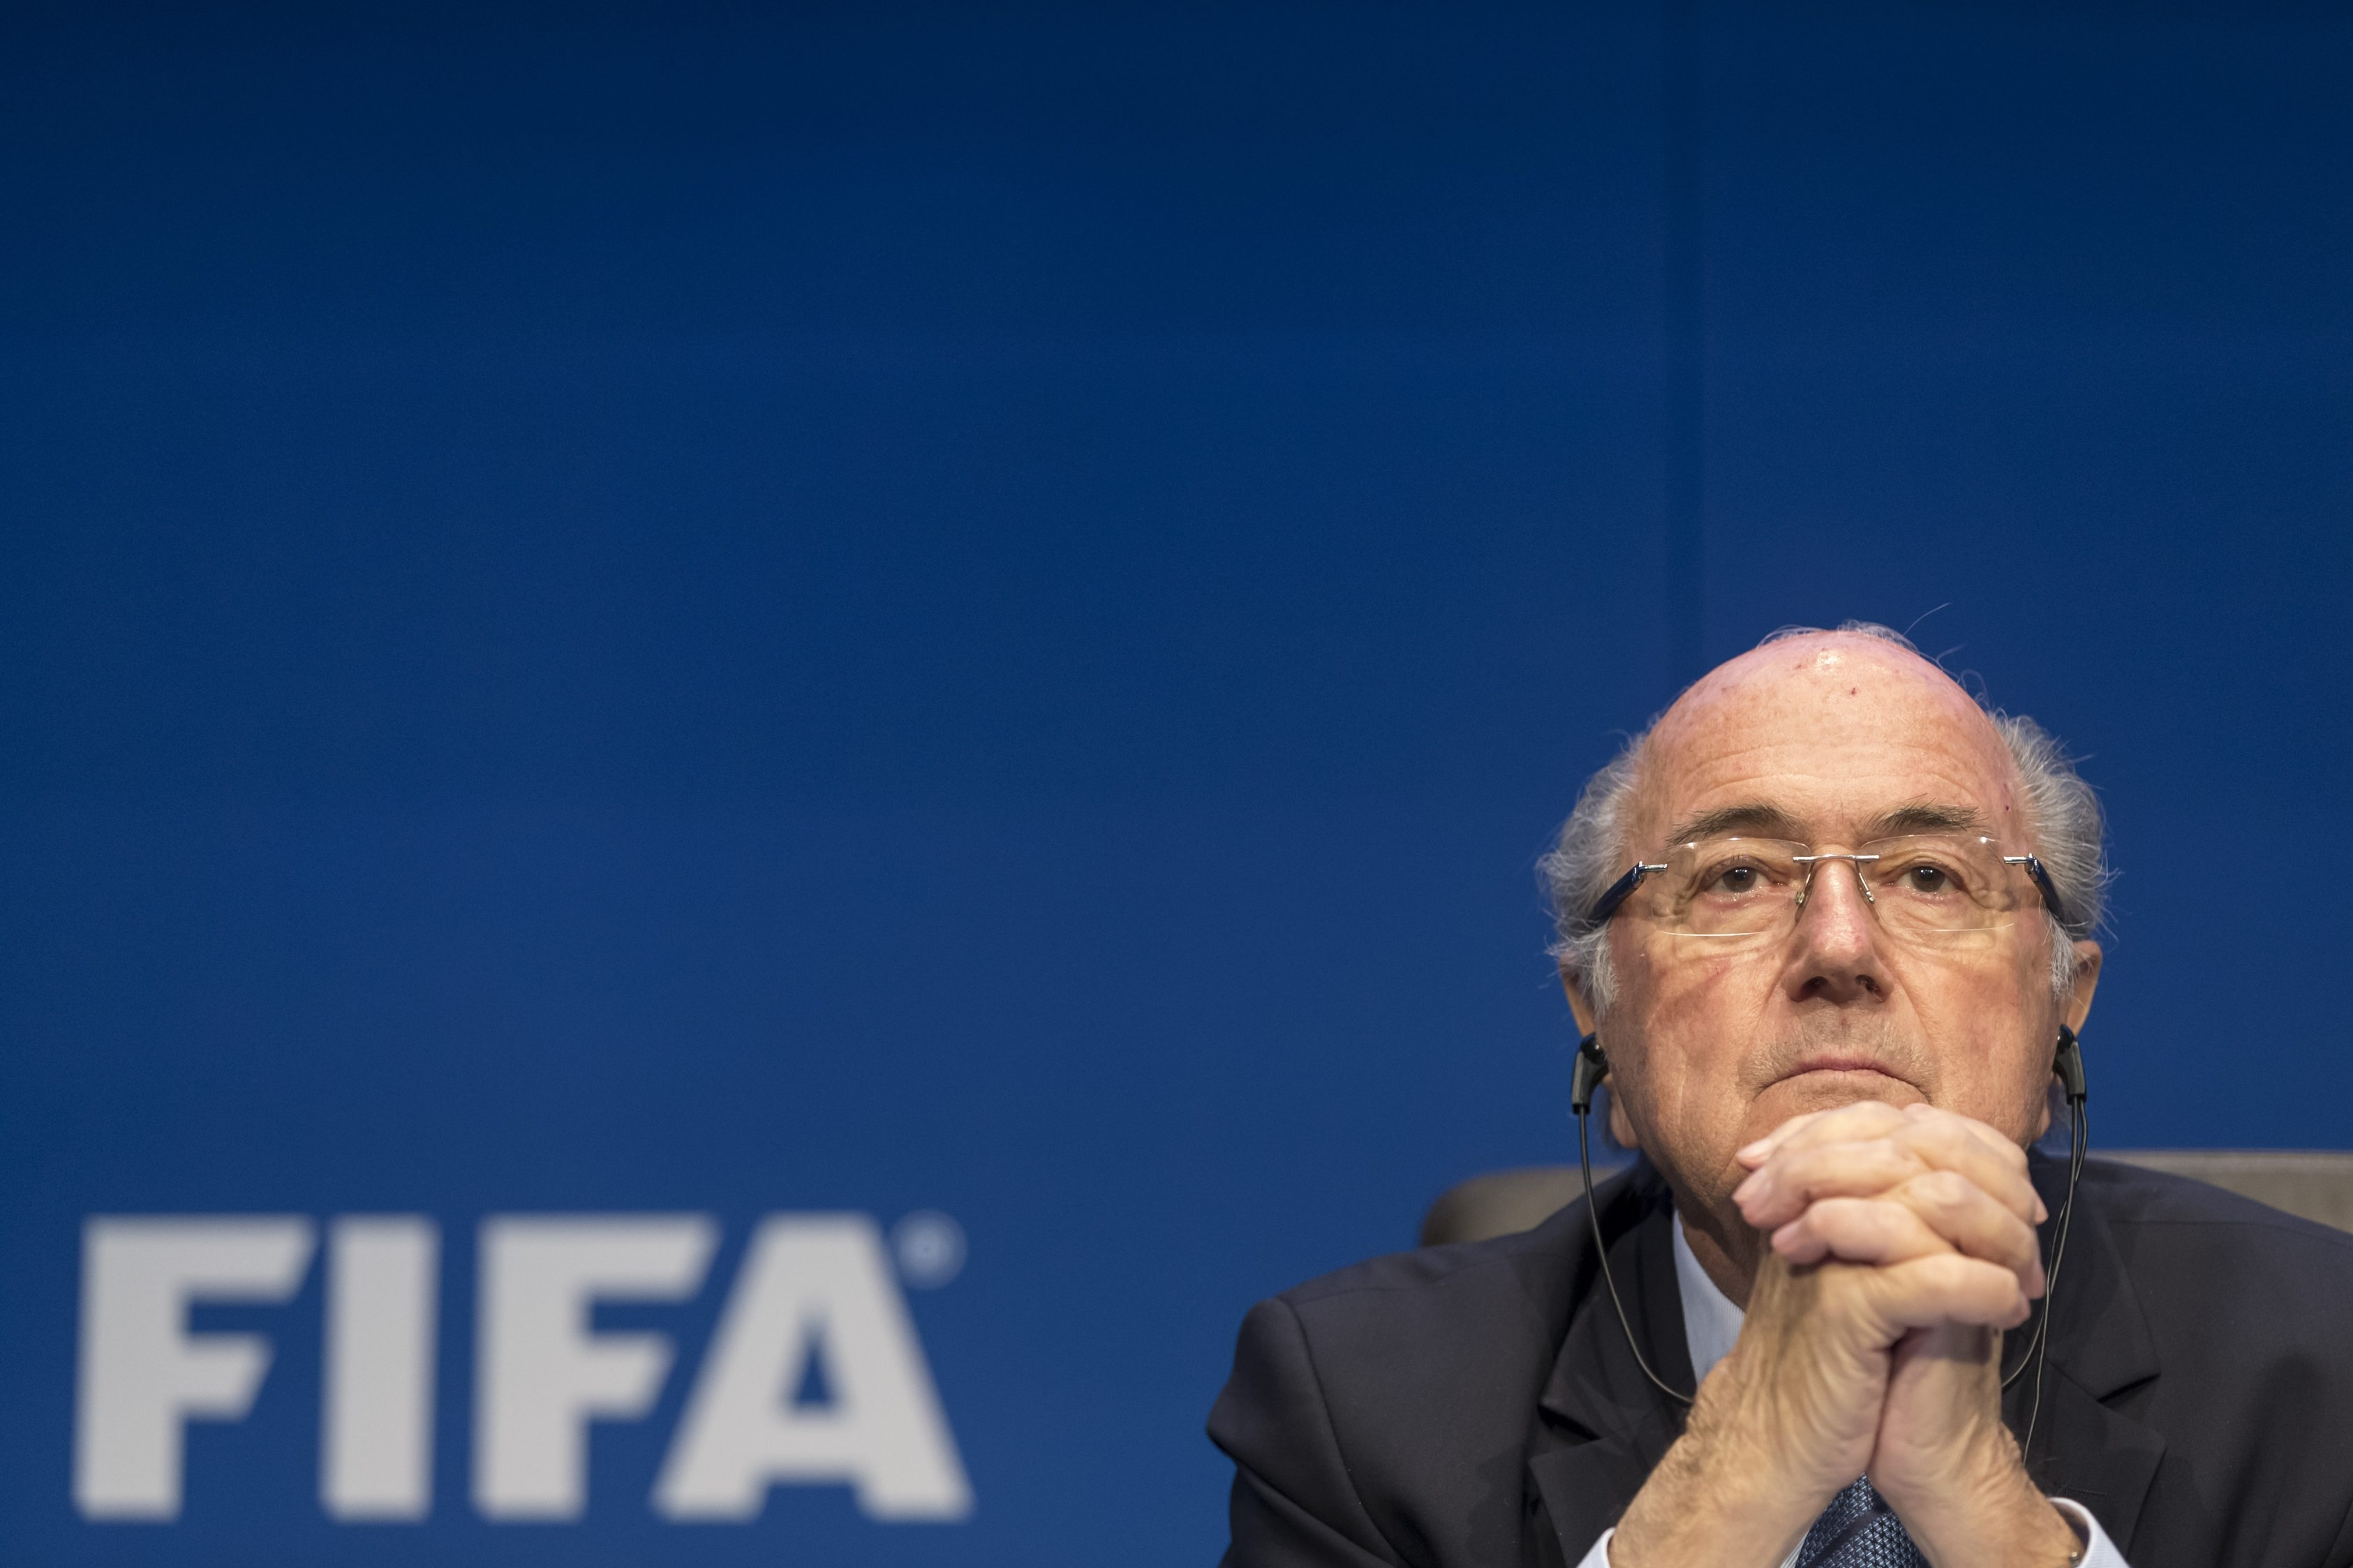 FIFA President Joseph S. Blatter will resign in the wake of corruption probe. (Getty Images)